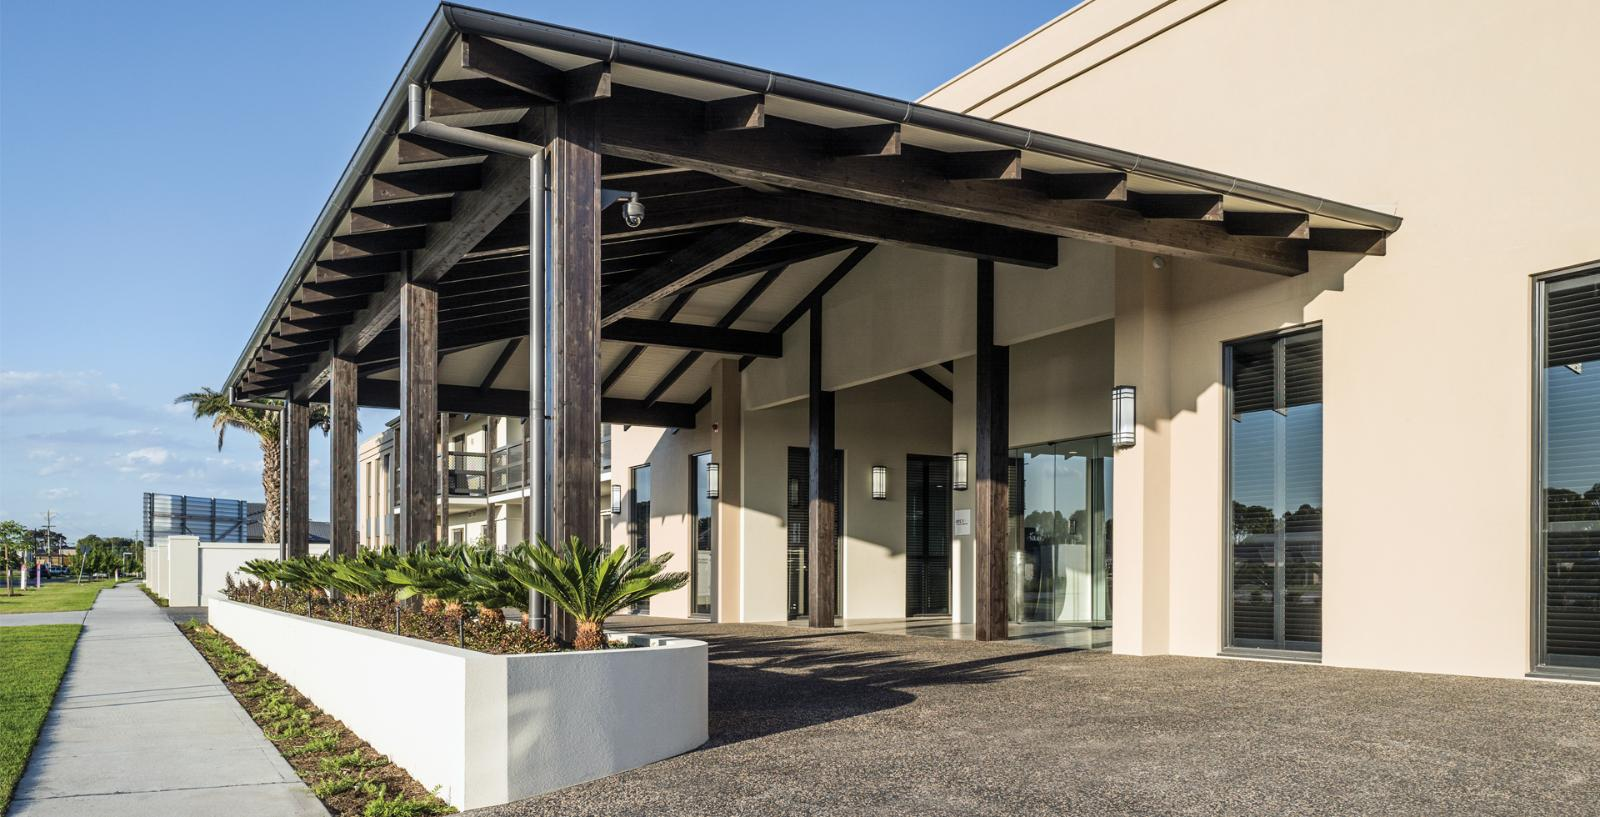 Arcare aged care keysborough exterior 04